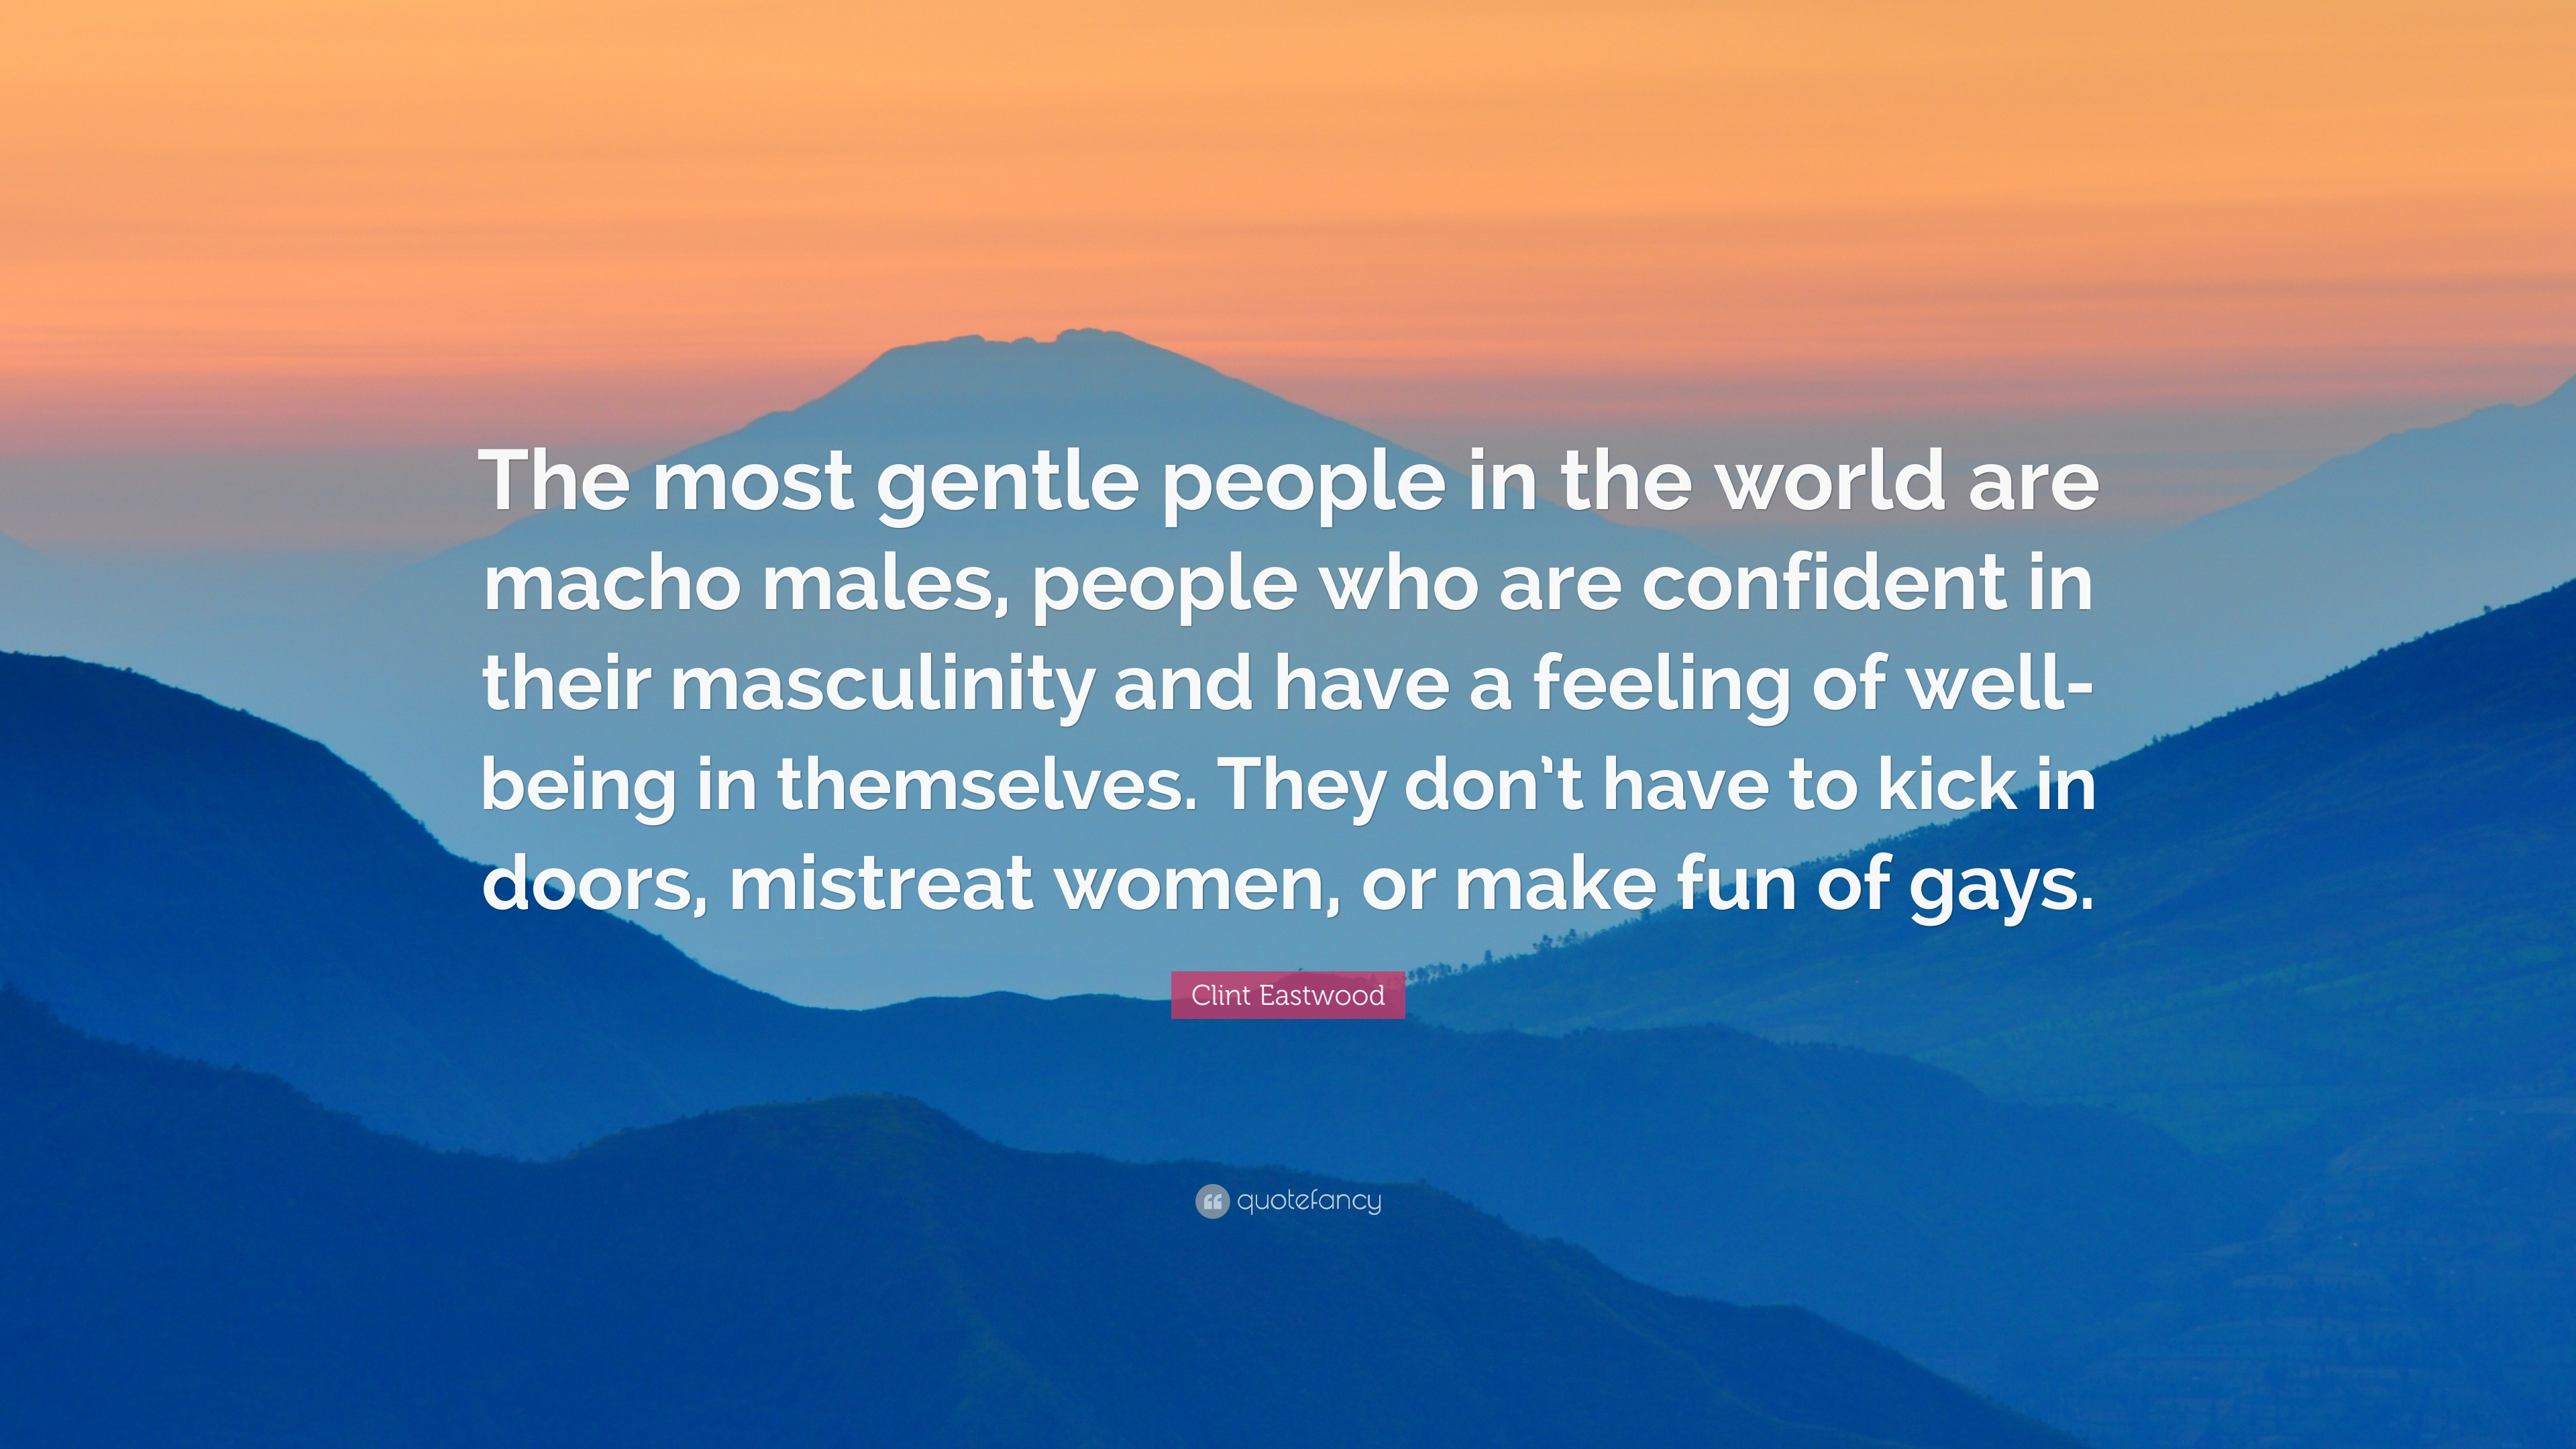 79715-Clint-Eastwood-Quote-The-most-gentle-people-in-the-world-are-macho.jpg